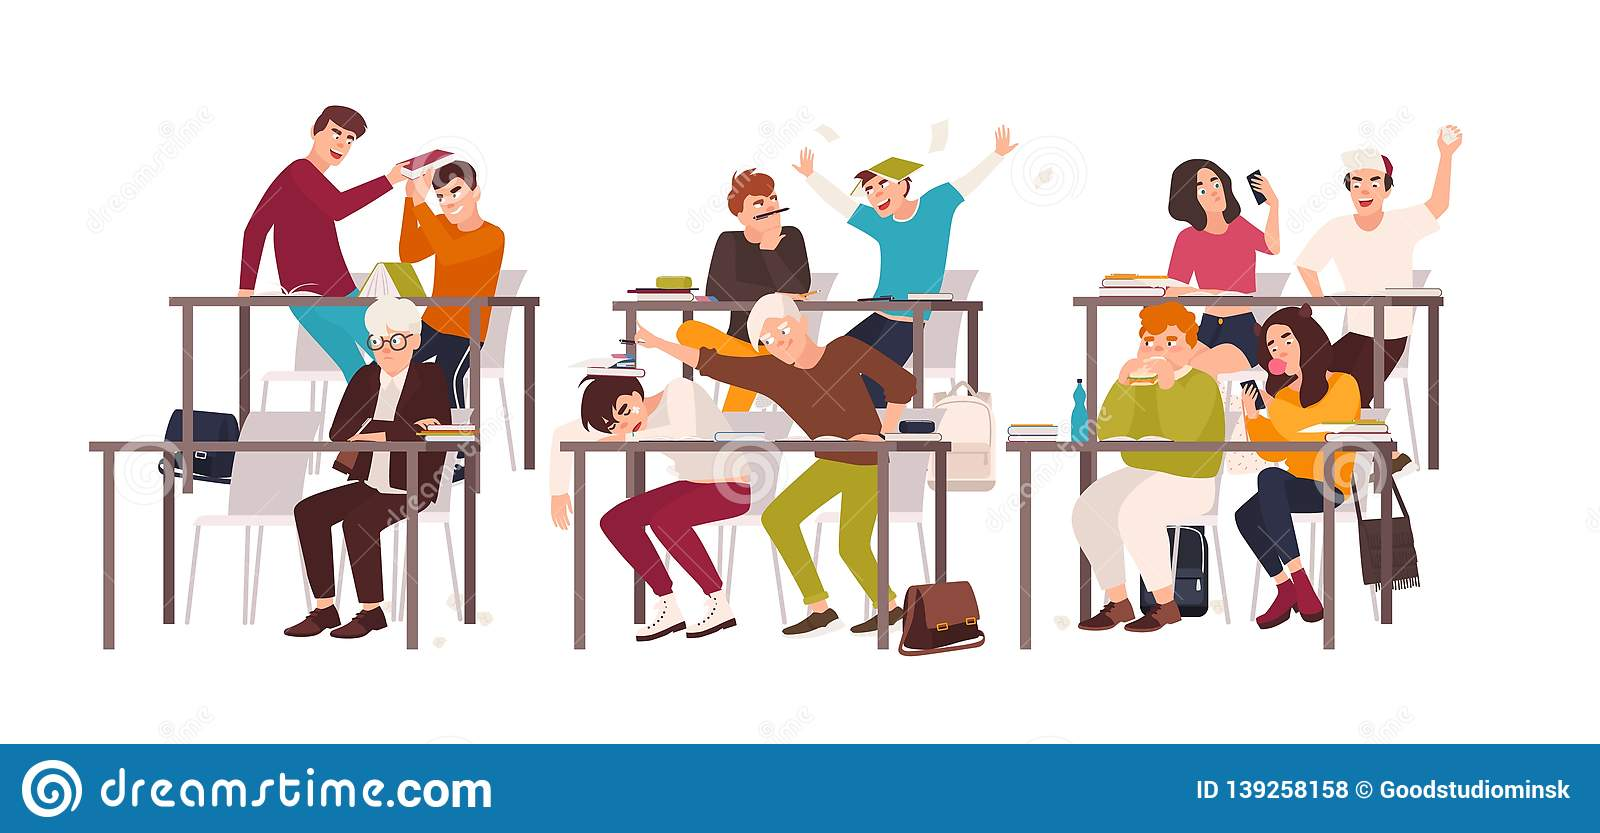 Group of students or pupils sitting at desks in classroom and demonstrating bad behavior - fighting, eating, sleeping